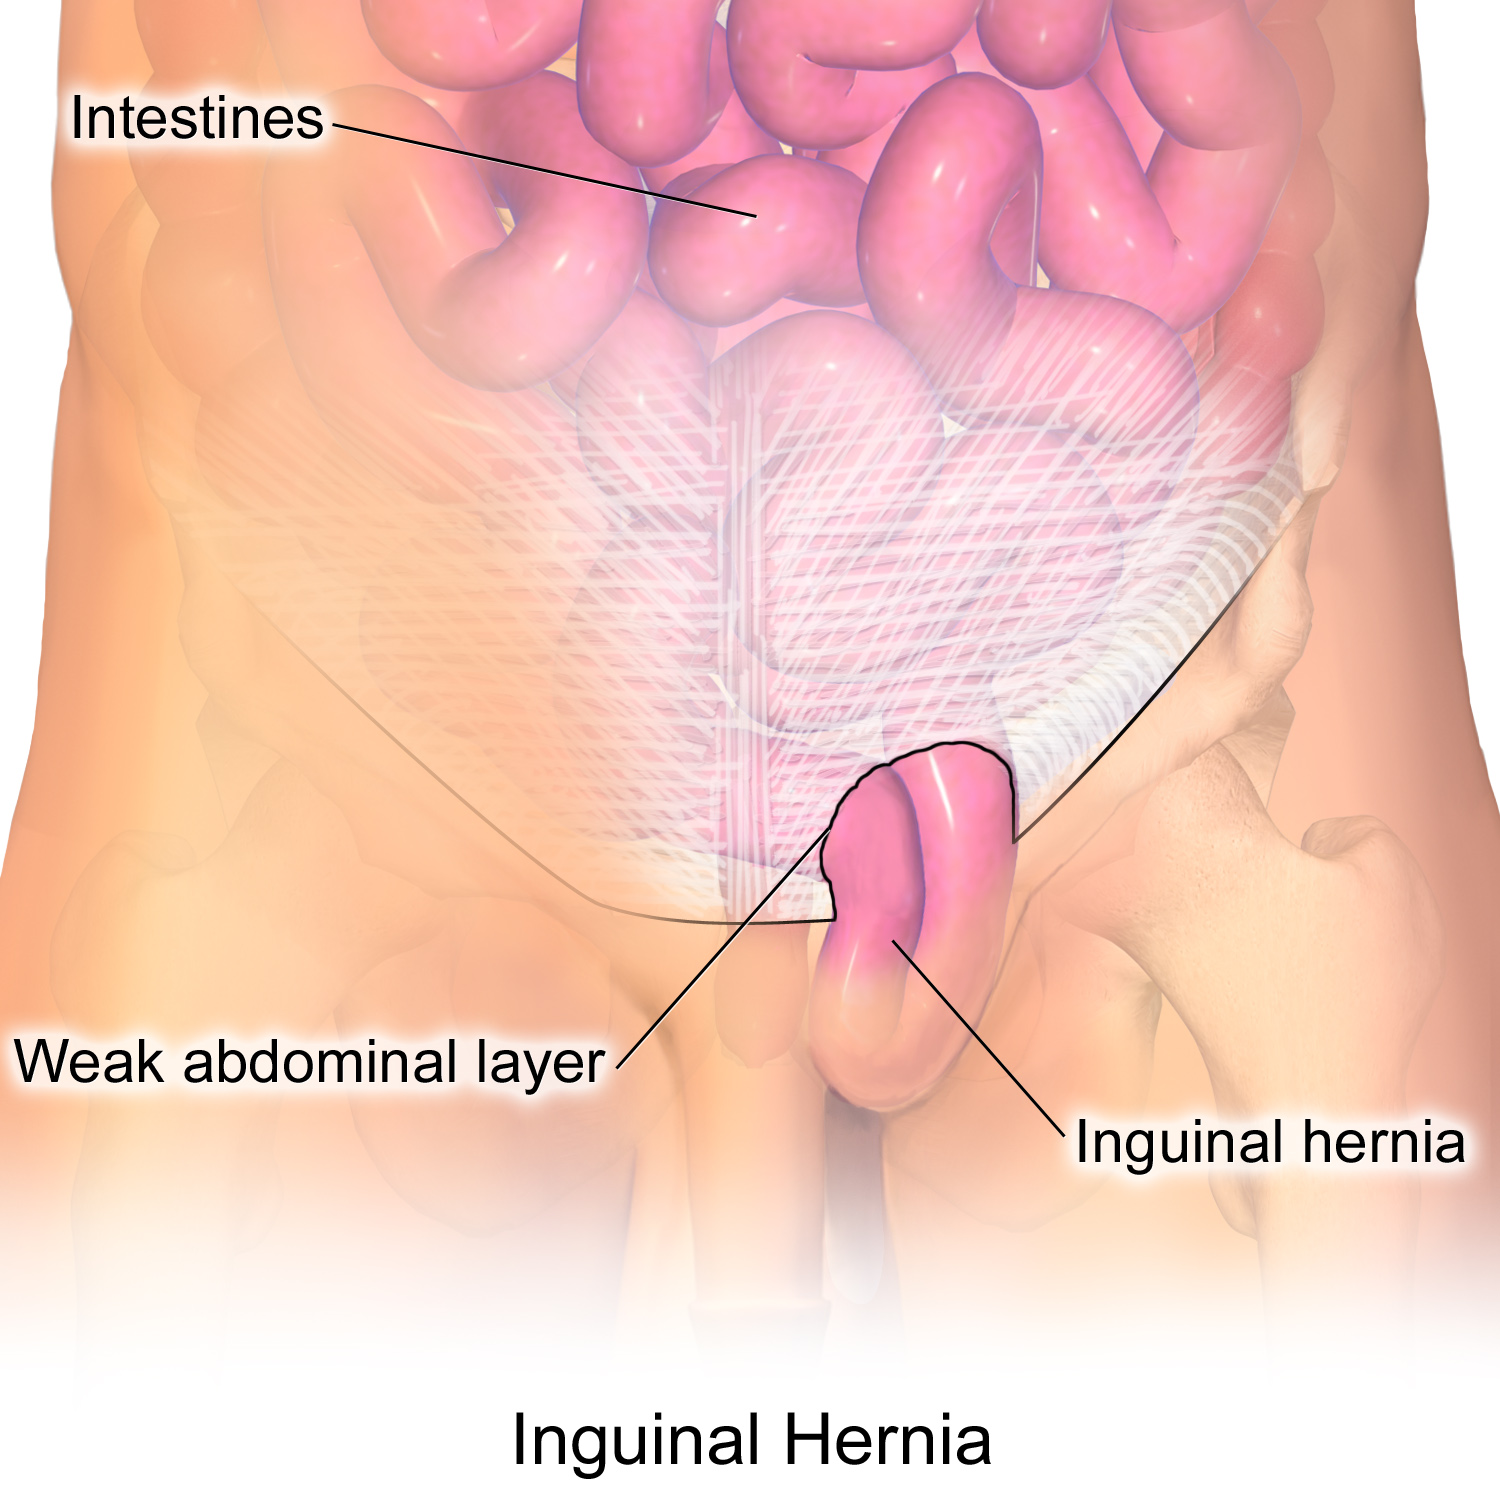 I have an Inguinal Hernia: Do I Need Surgery? - T  Douglas Gurley MD